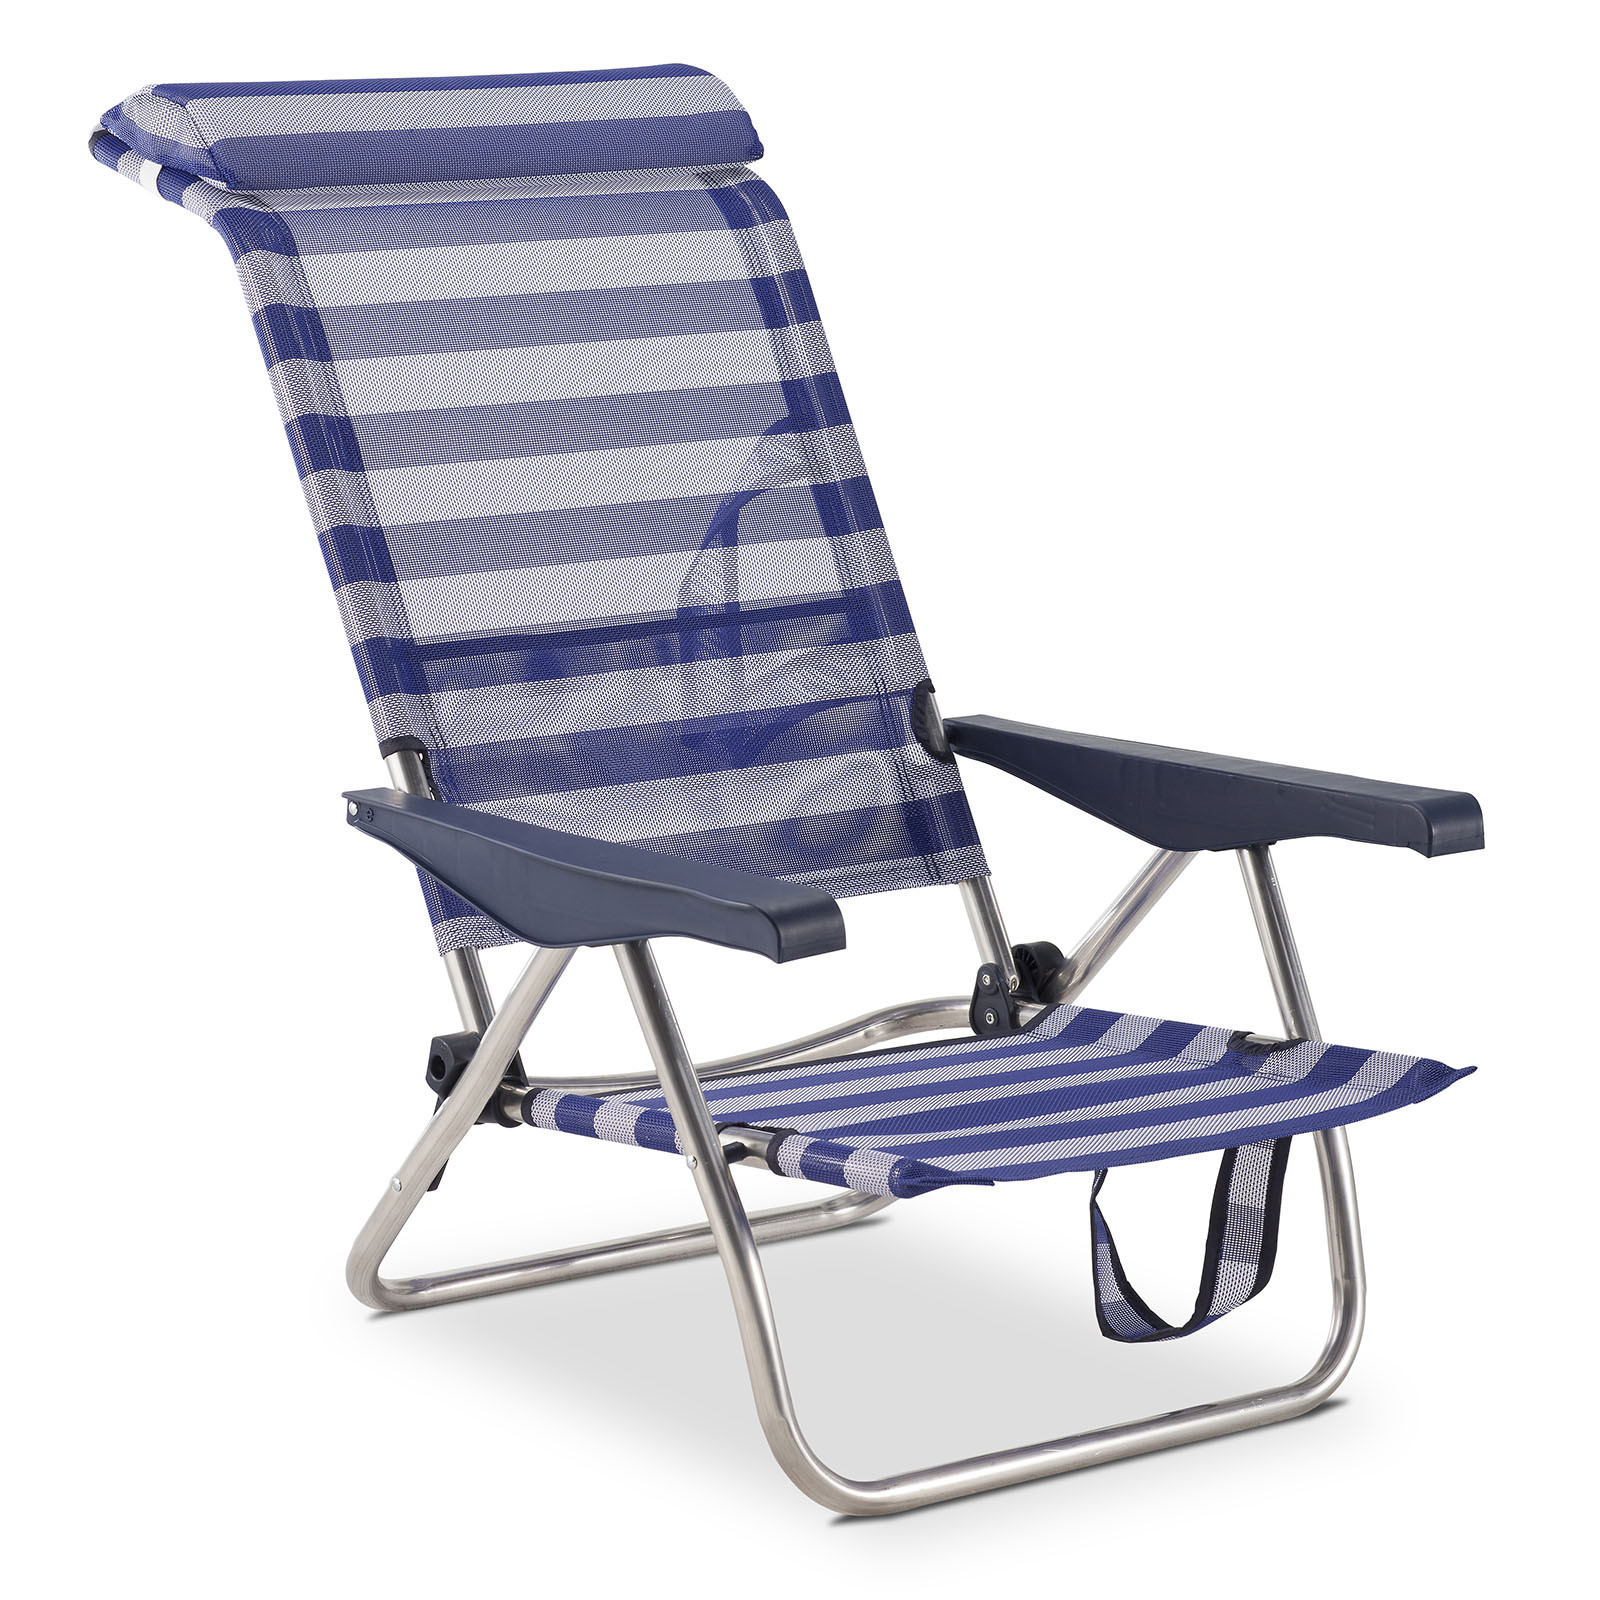 Solenny Beach Chair Bed 4 Position With Back Pocket With Handles AND With Printhead Height Adjustable